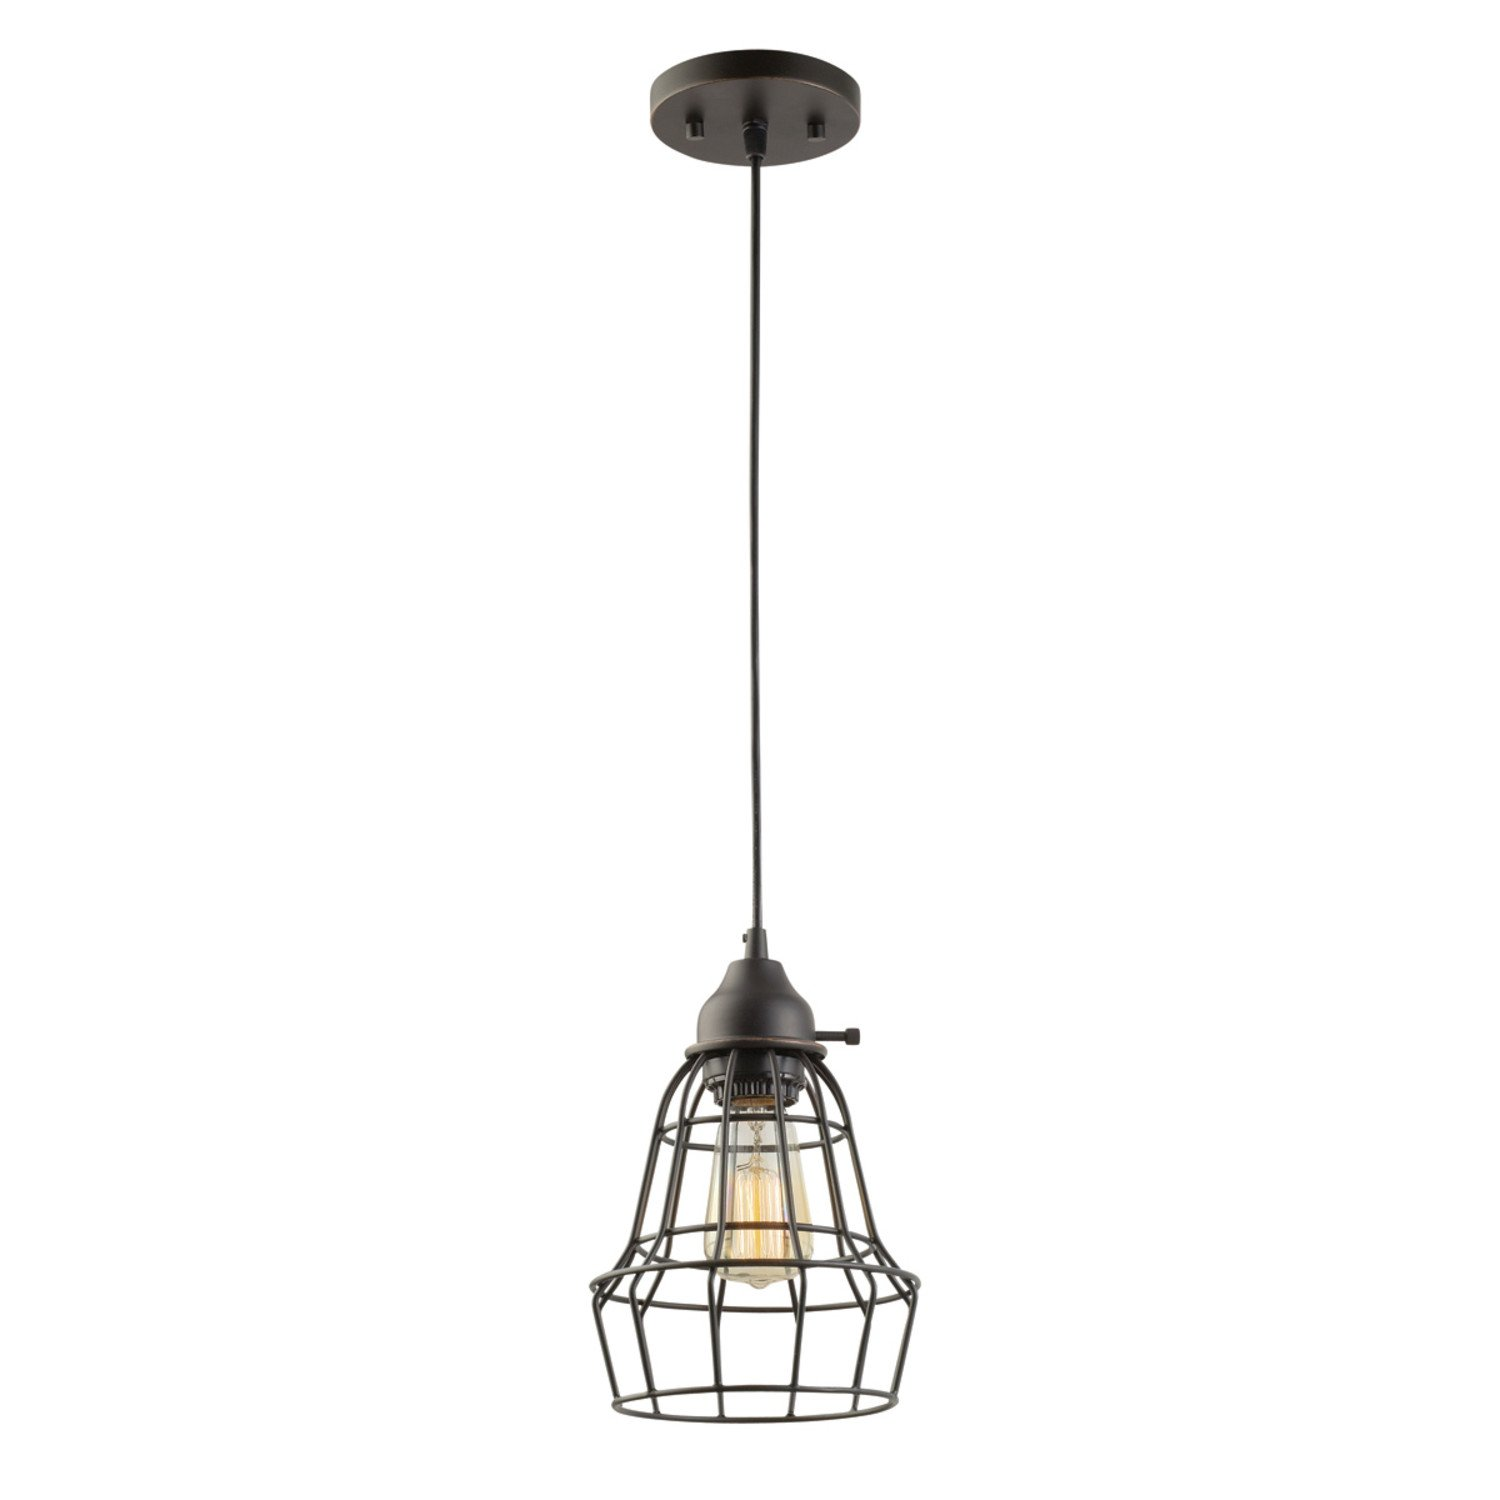 Globe Electric 1-Light 7'' Vintage Hanging Caged Pendant, Oil Rubbed Bronze, Black Cord, 64172